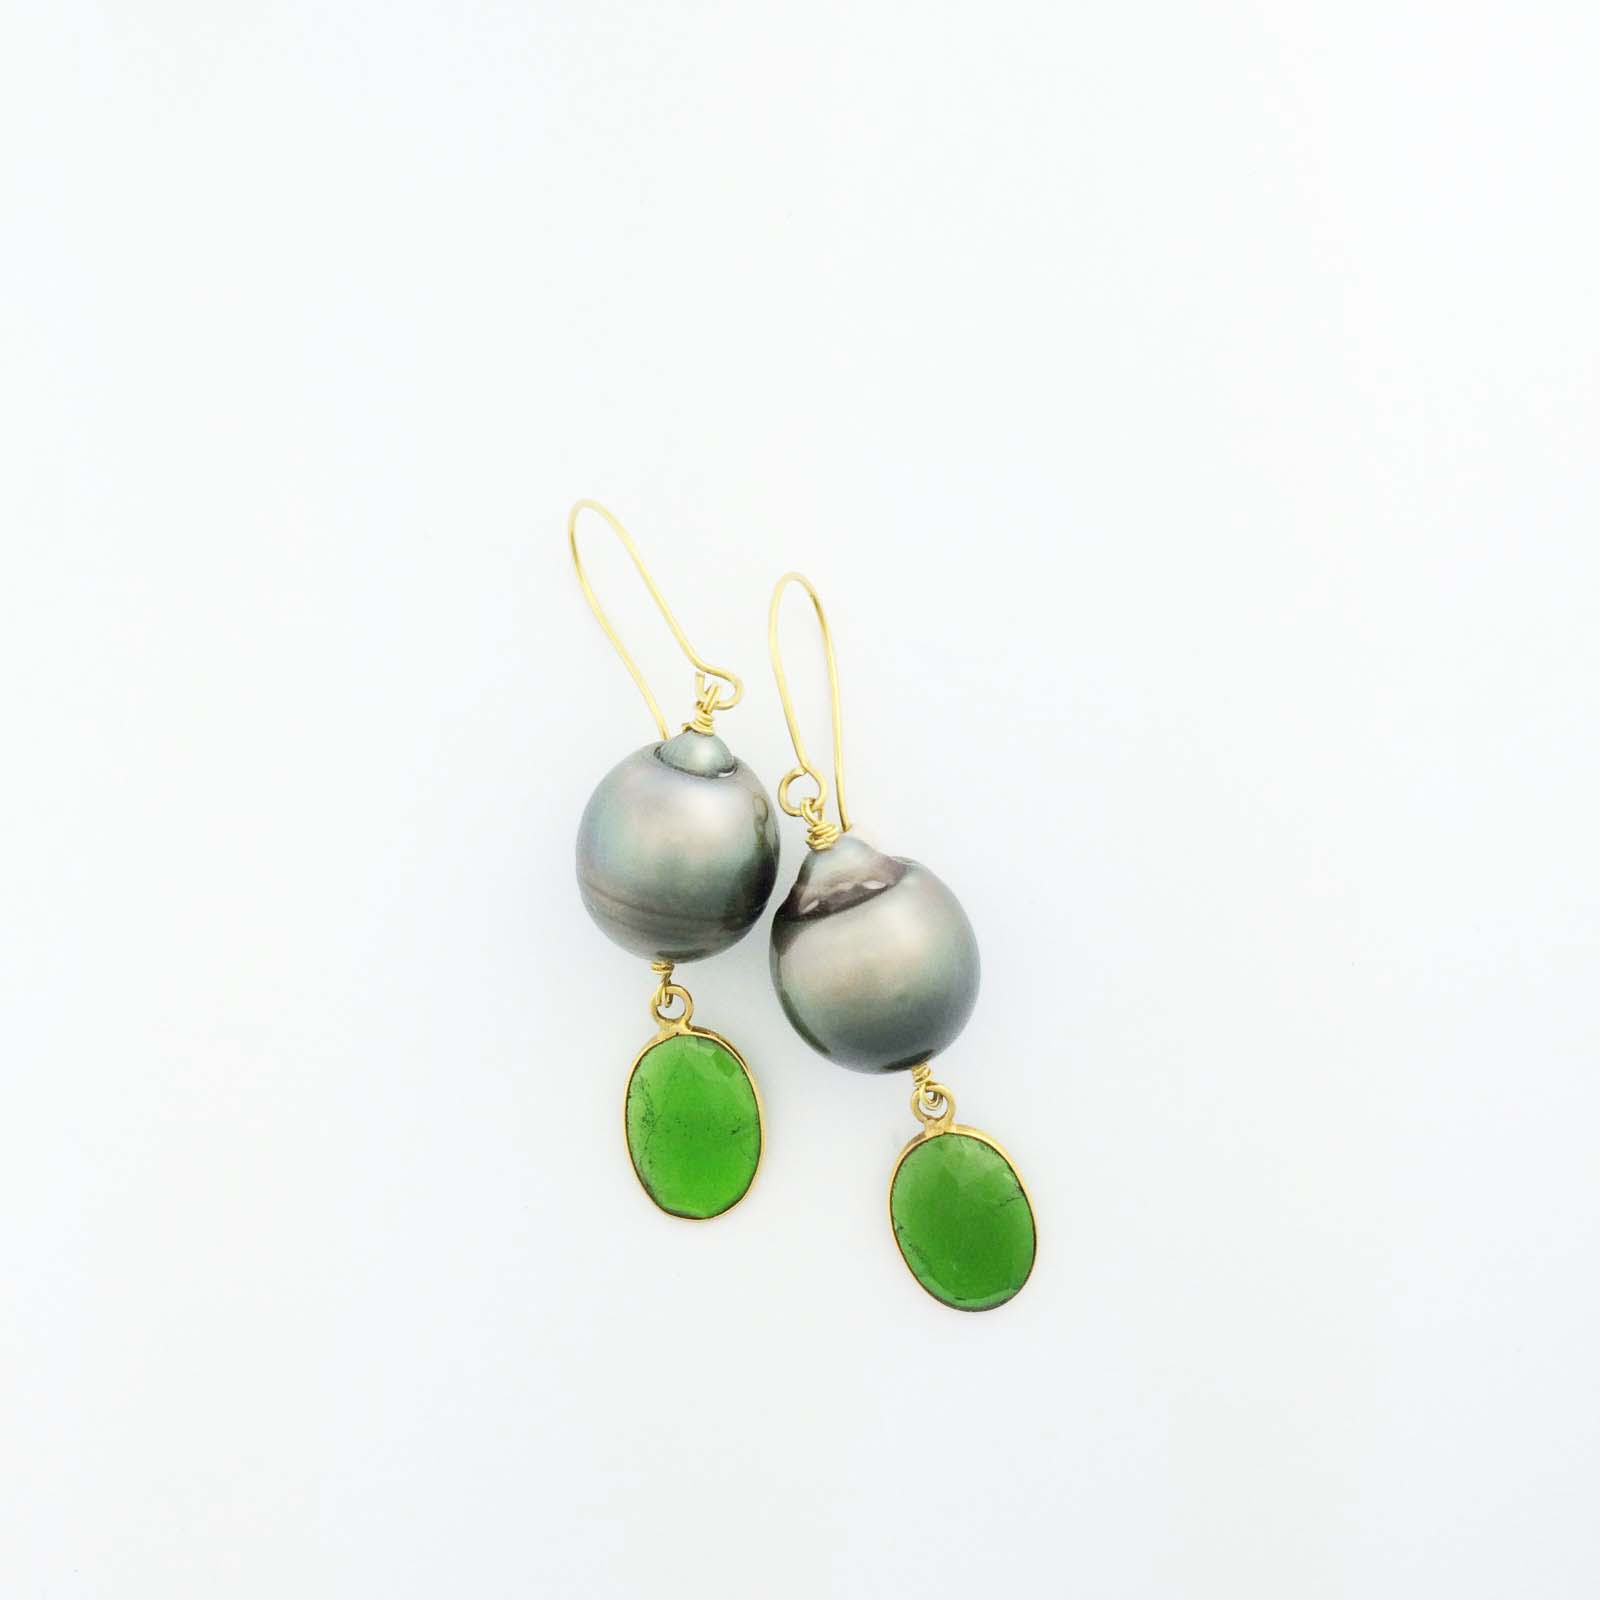 18k Tahitian pearl and green tourmaline earrings